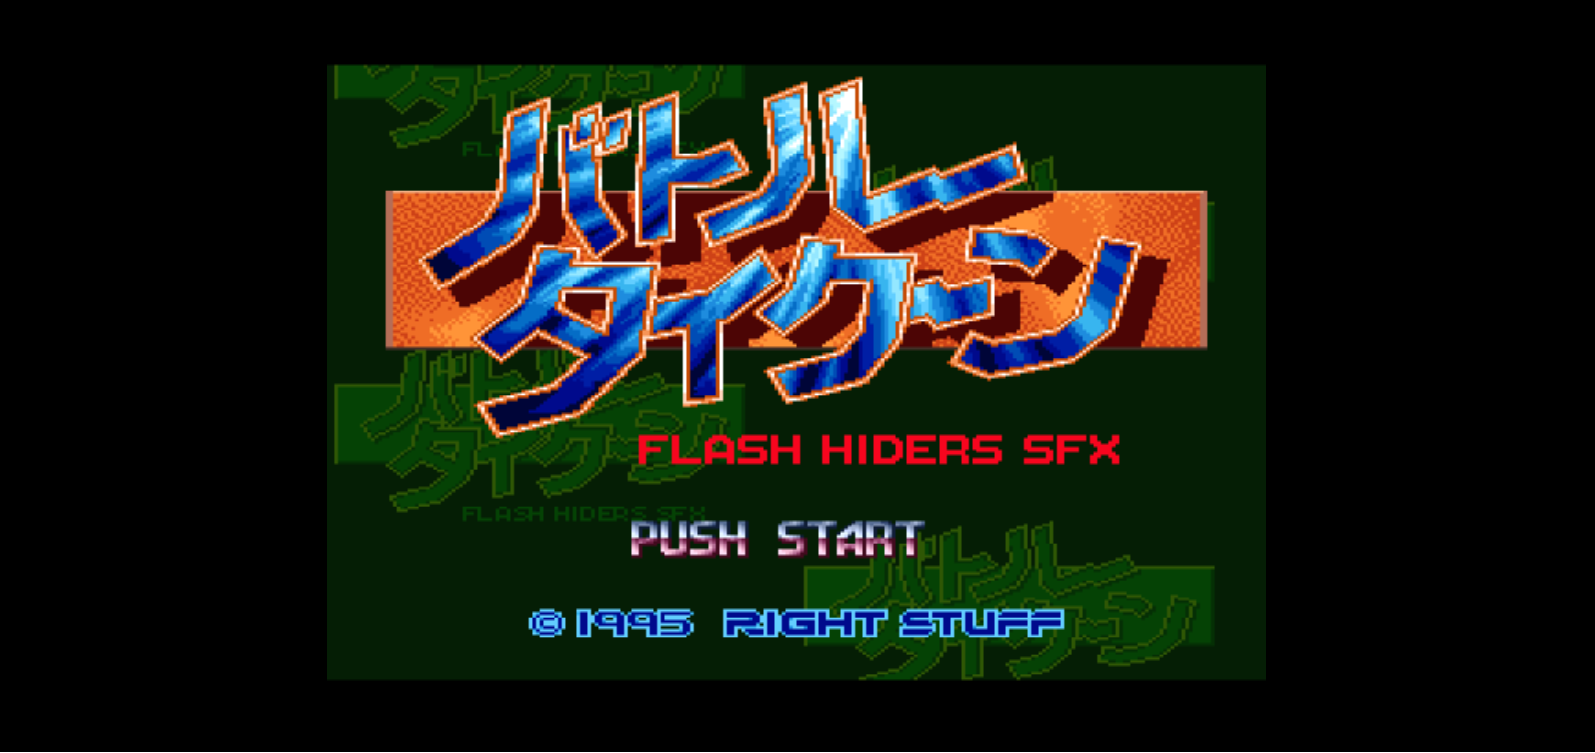 Battle Tycoon - Flash Hiders SFX (Japan)